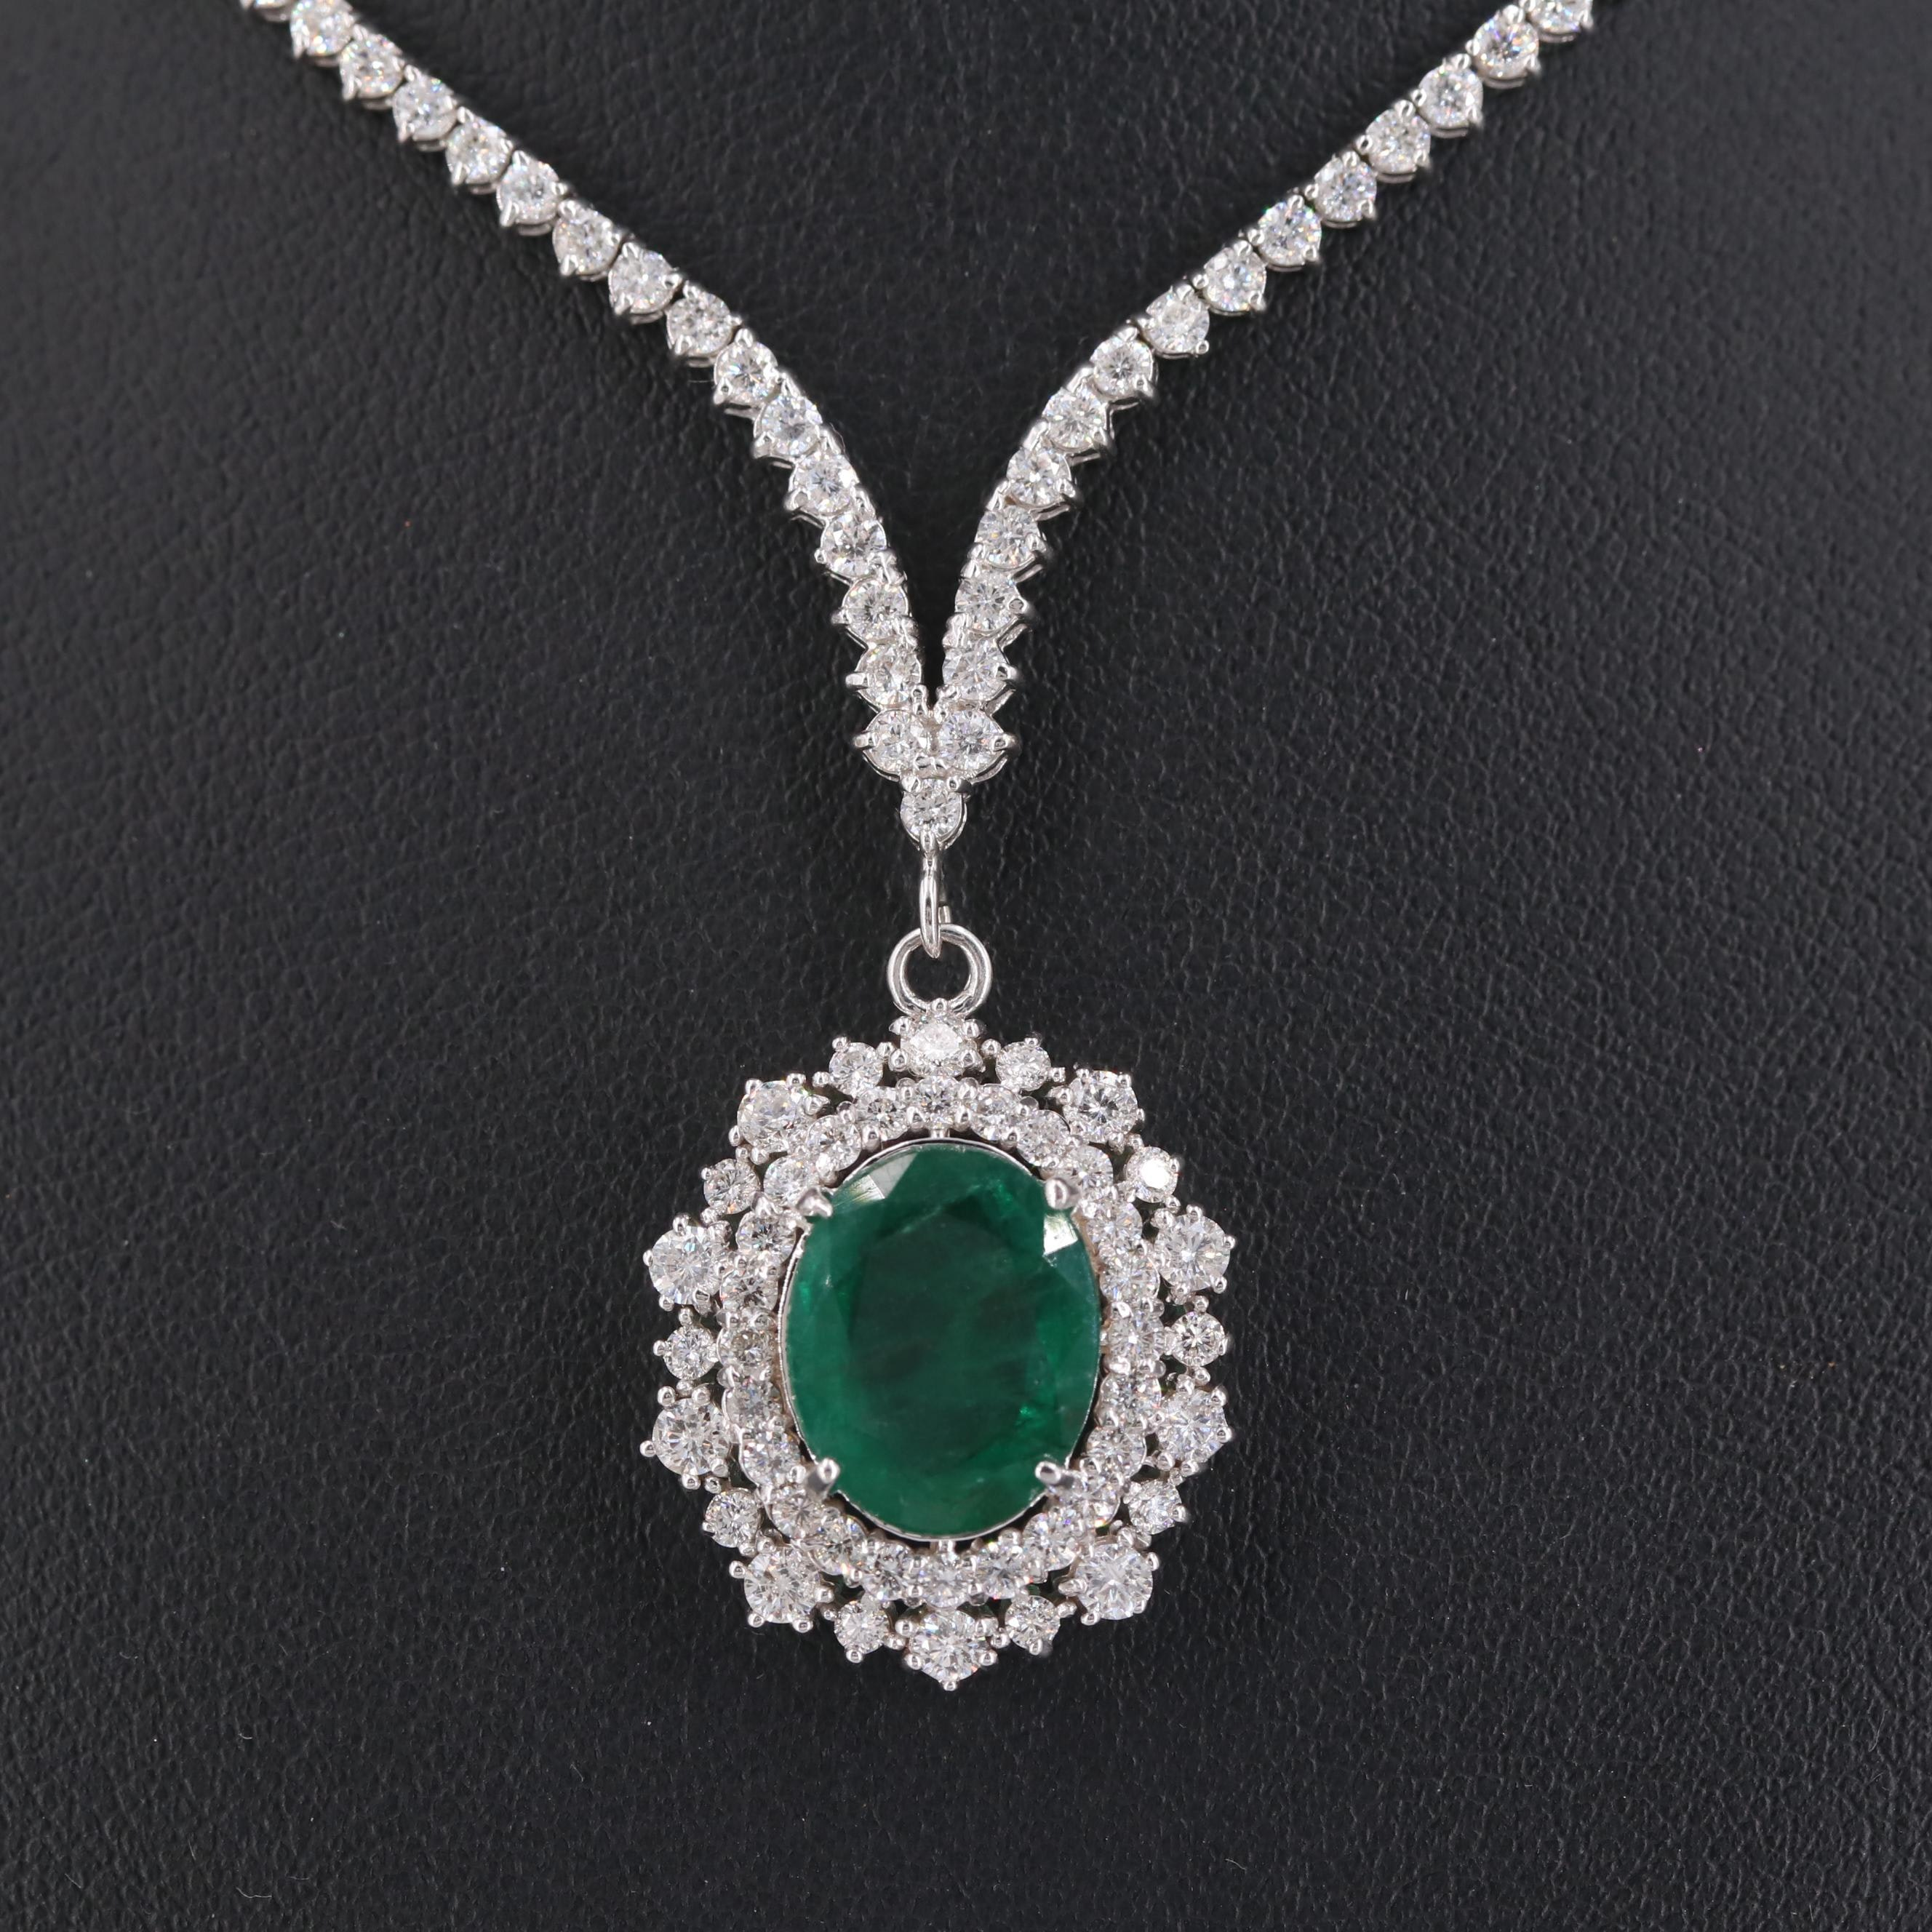 18K White Gold 3.57 CT Emerald and 4.20 CTW Diamond Necklace